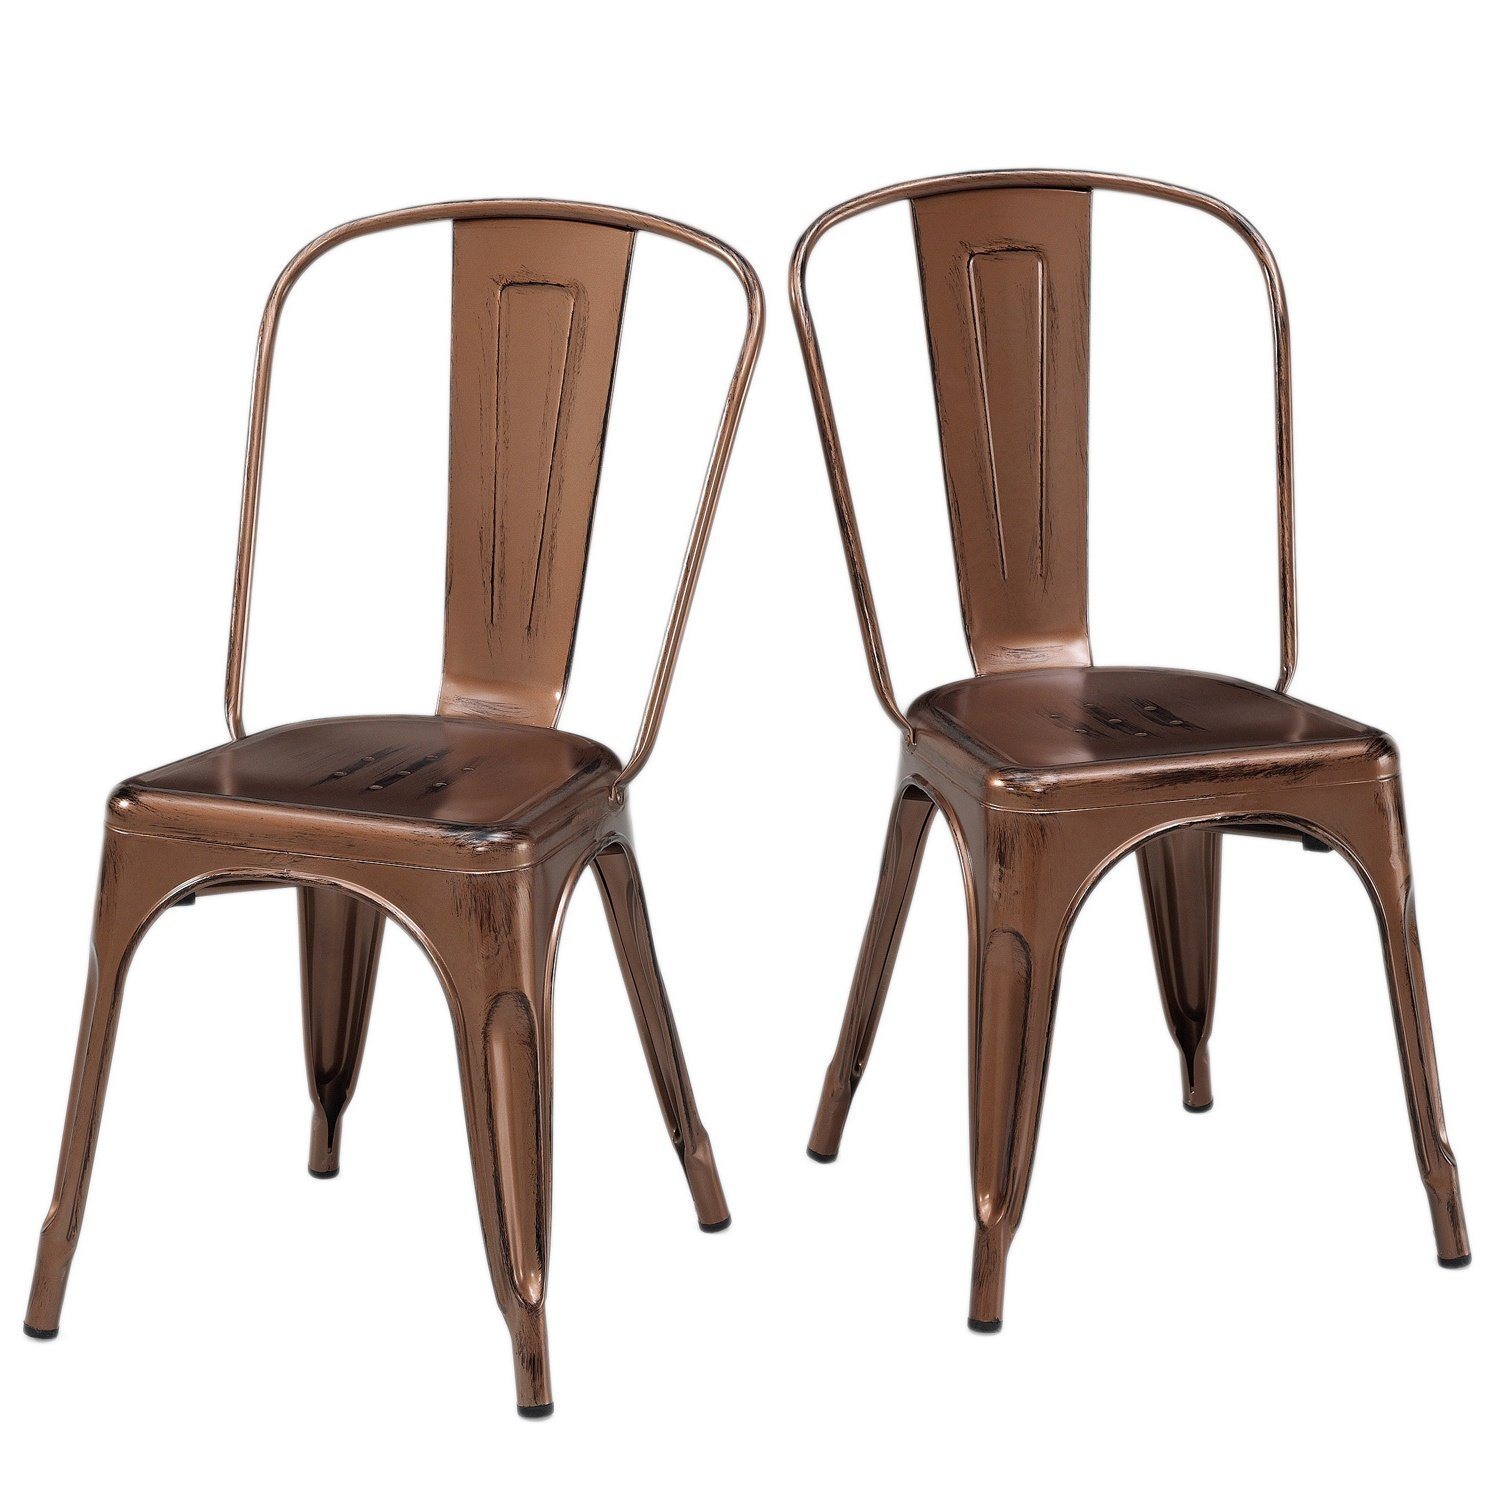 Set of 2 Antique Copper Metallic Steel Xavier Pauchard Tolix A Style Chairs Includes ModHaus Living (TM) Pen